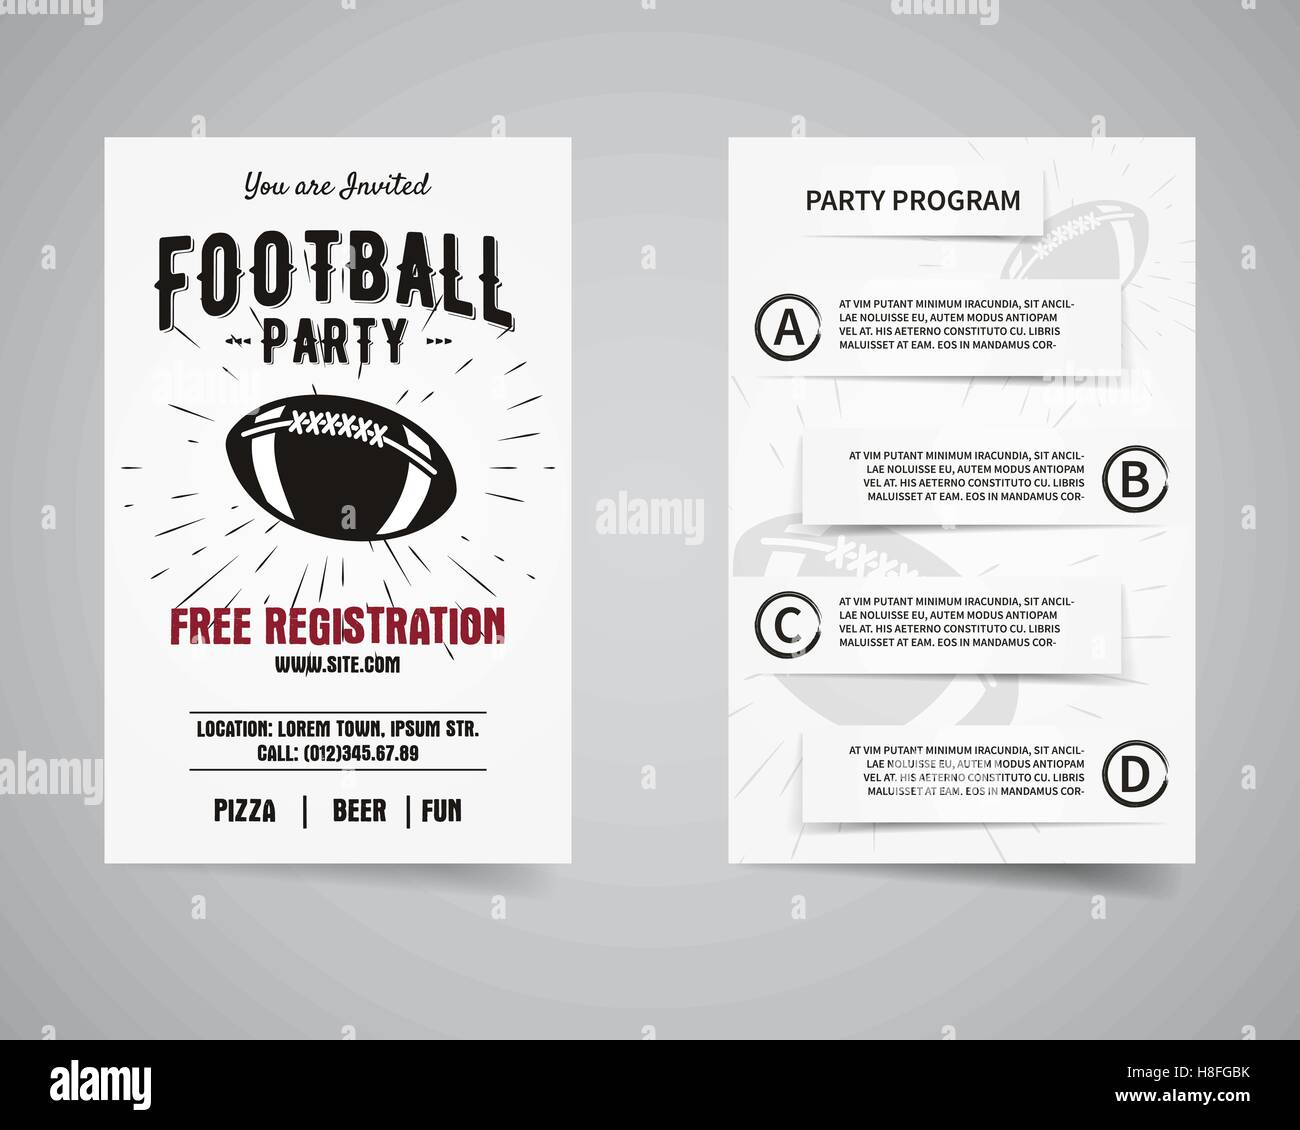 American Football Party Back And Front Flyer Template Design. Invitation  Template. Usa Sport Brand Identity Letterhead. Party Poster And Brochure  With